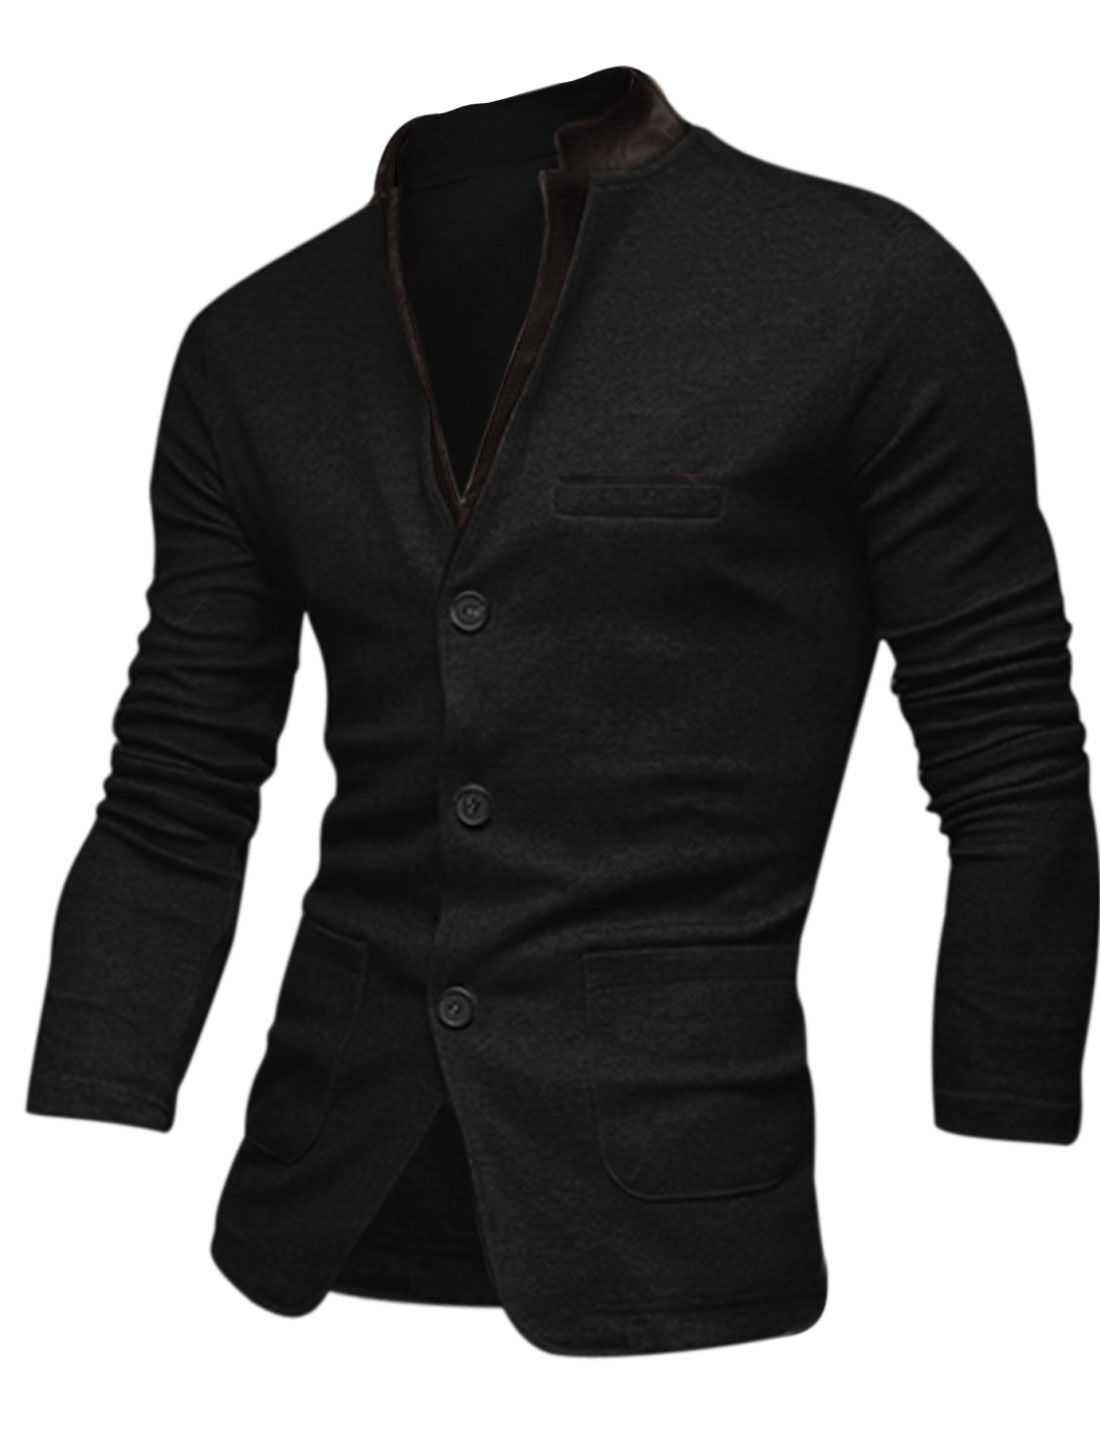 Men Notched Lapel Design Fake Pockets Cozy Fit Jacket Black Black M